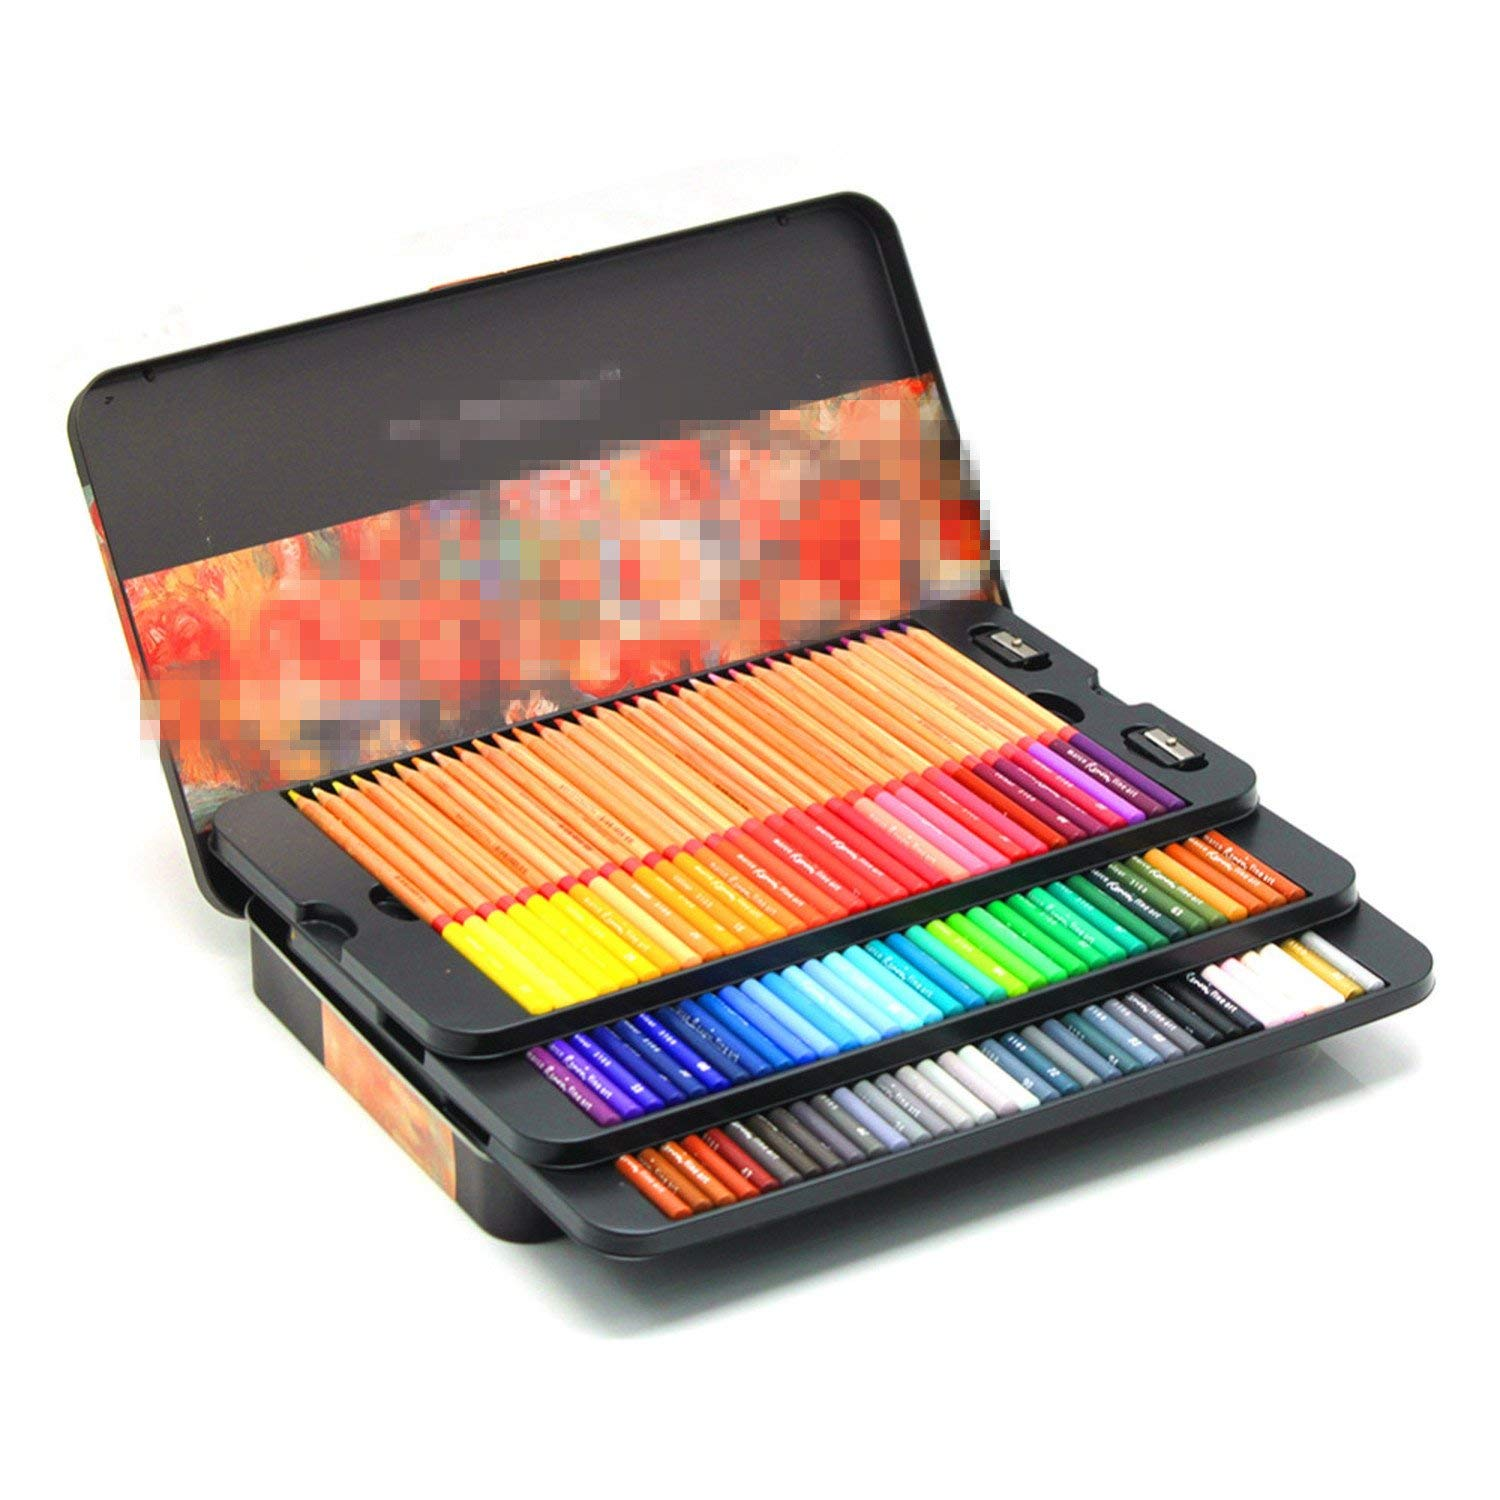 24/36/48/72/100 Colored Oil Colors Professional Pencils Art Drawing Painting Sketch Colored Pencils 72 pencil